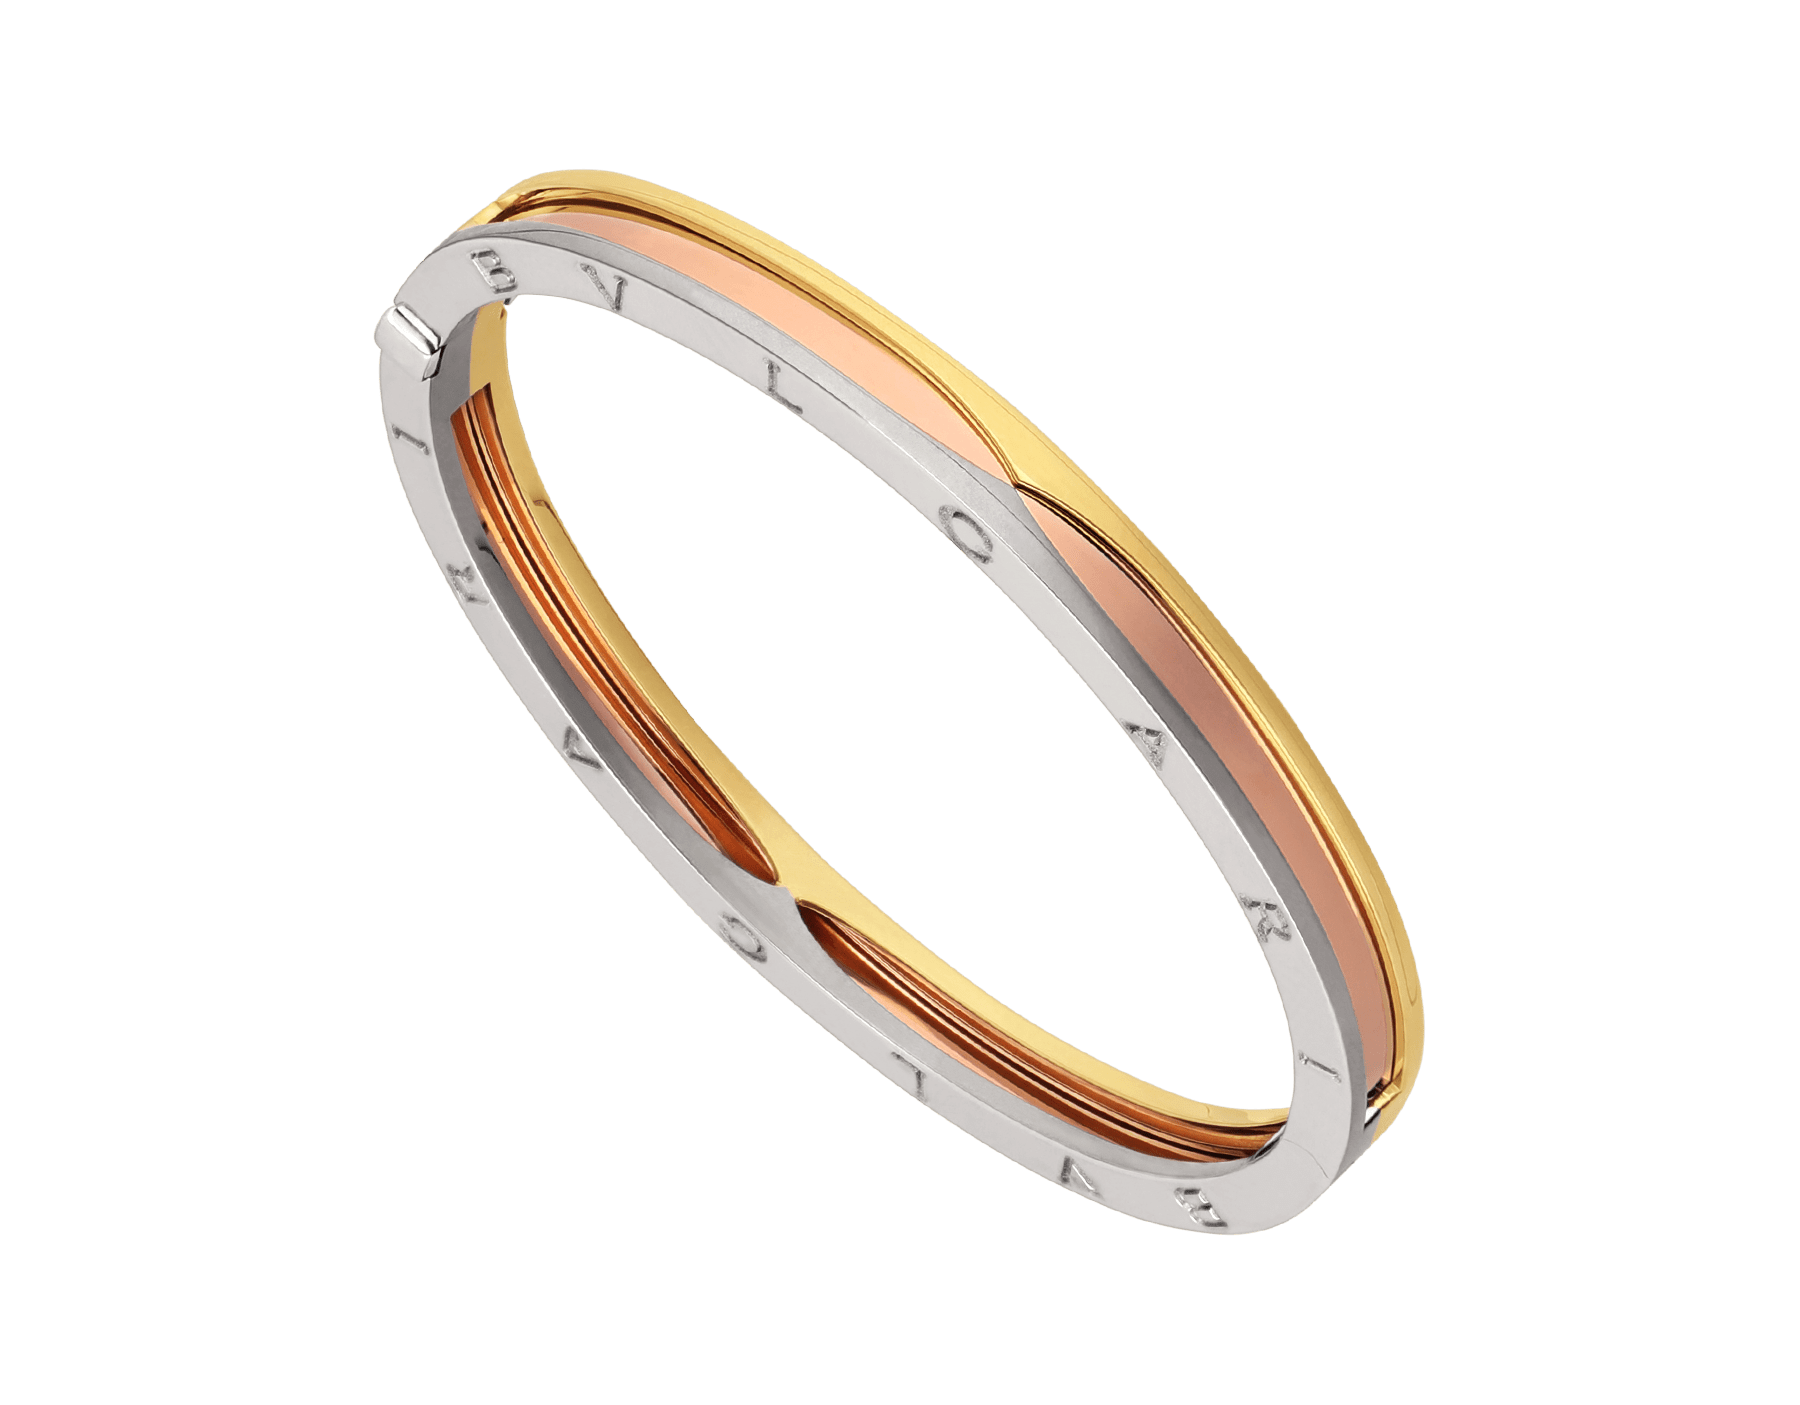 B.zero1 1bangle bracelet in 18 kt rose, yellow and white gold. BR857847 image 1